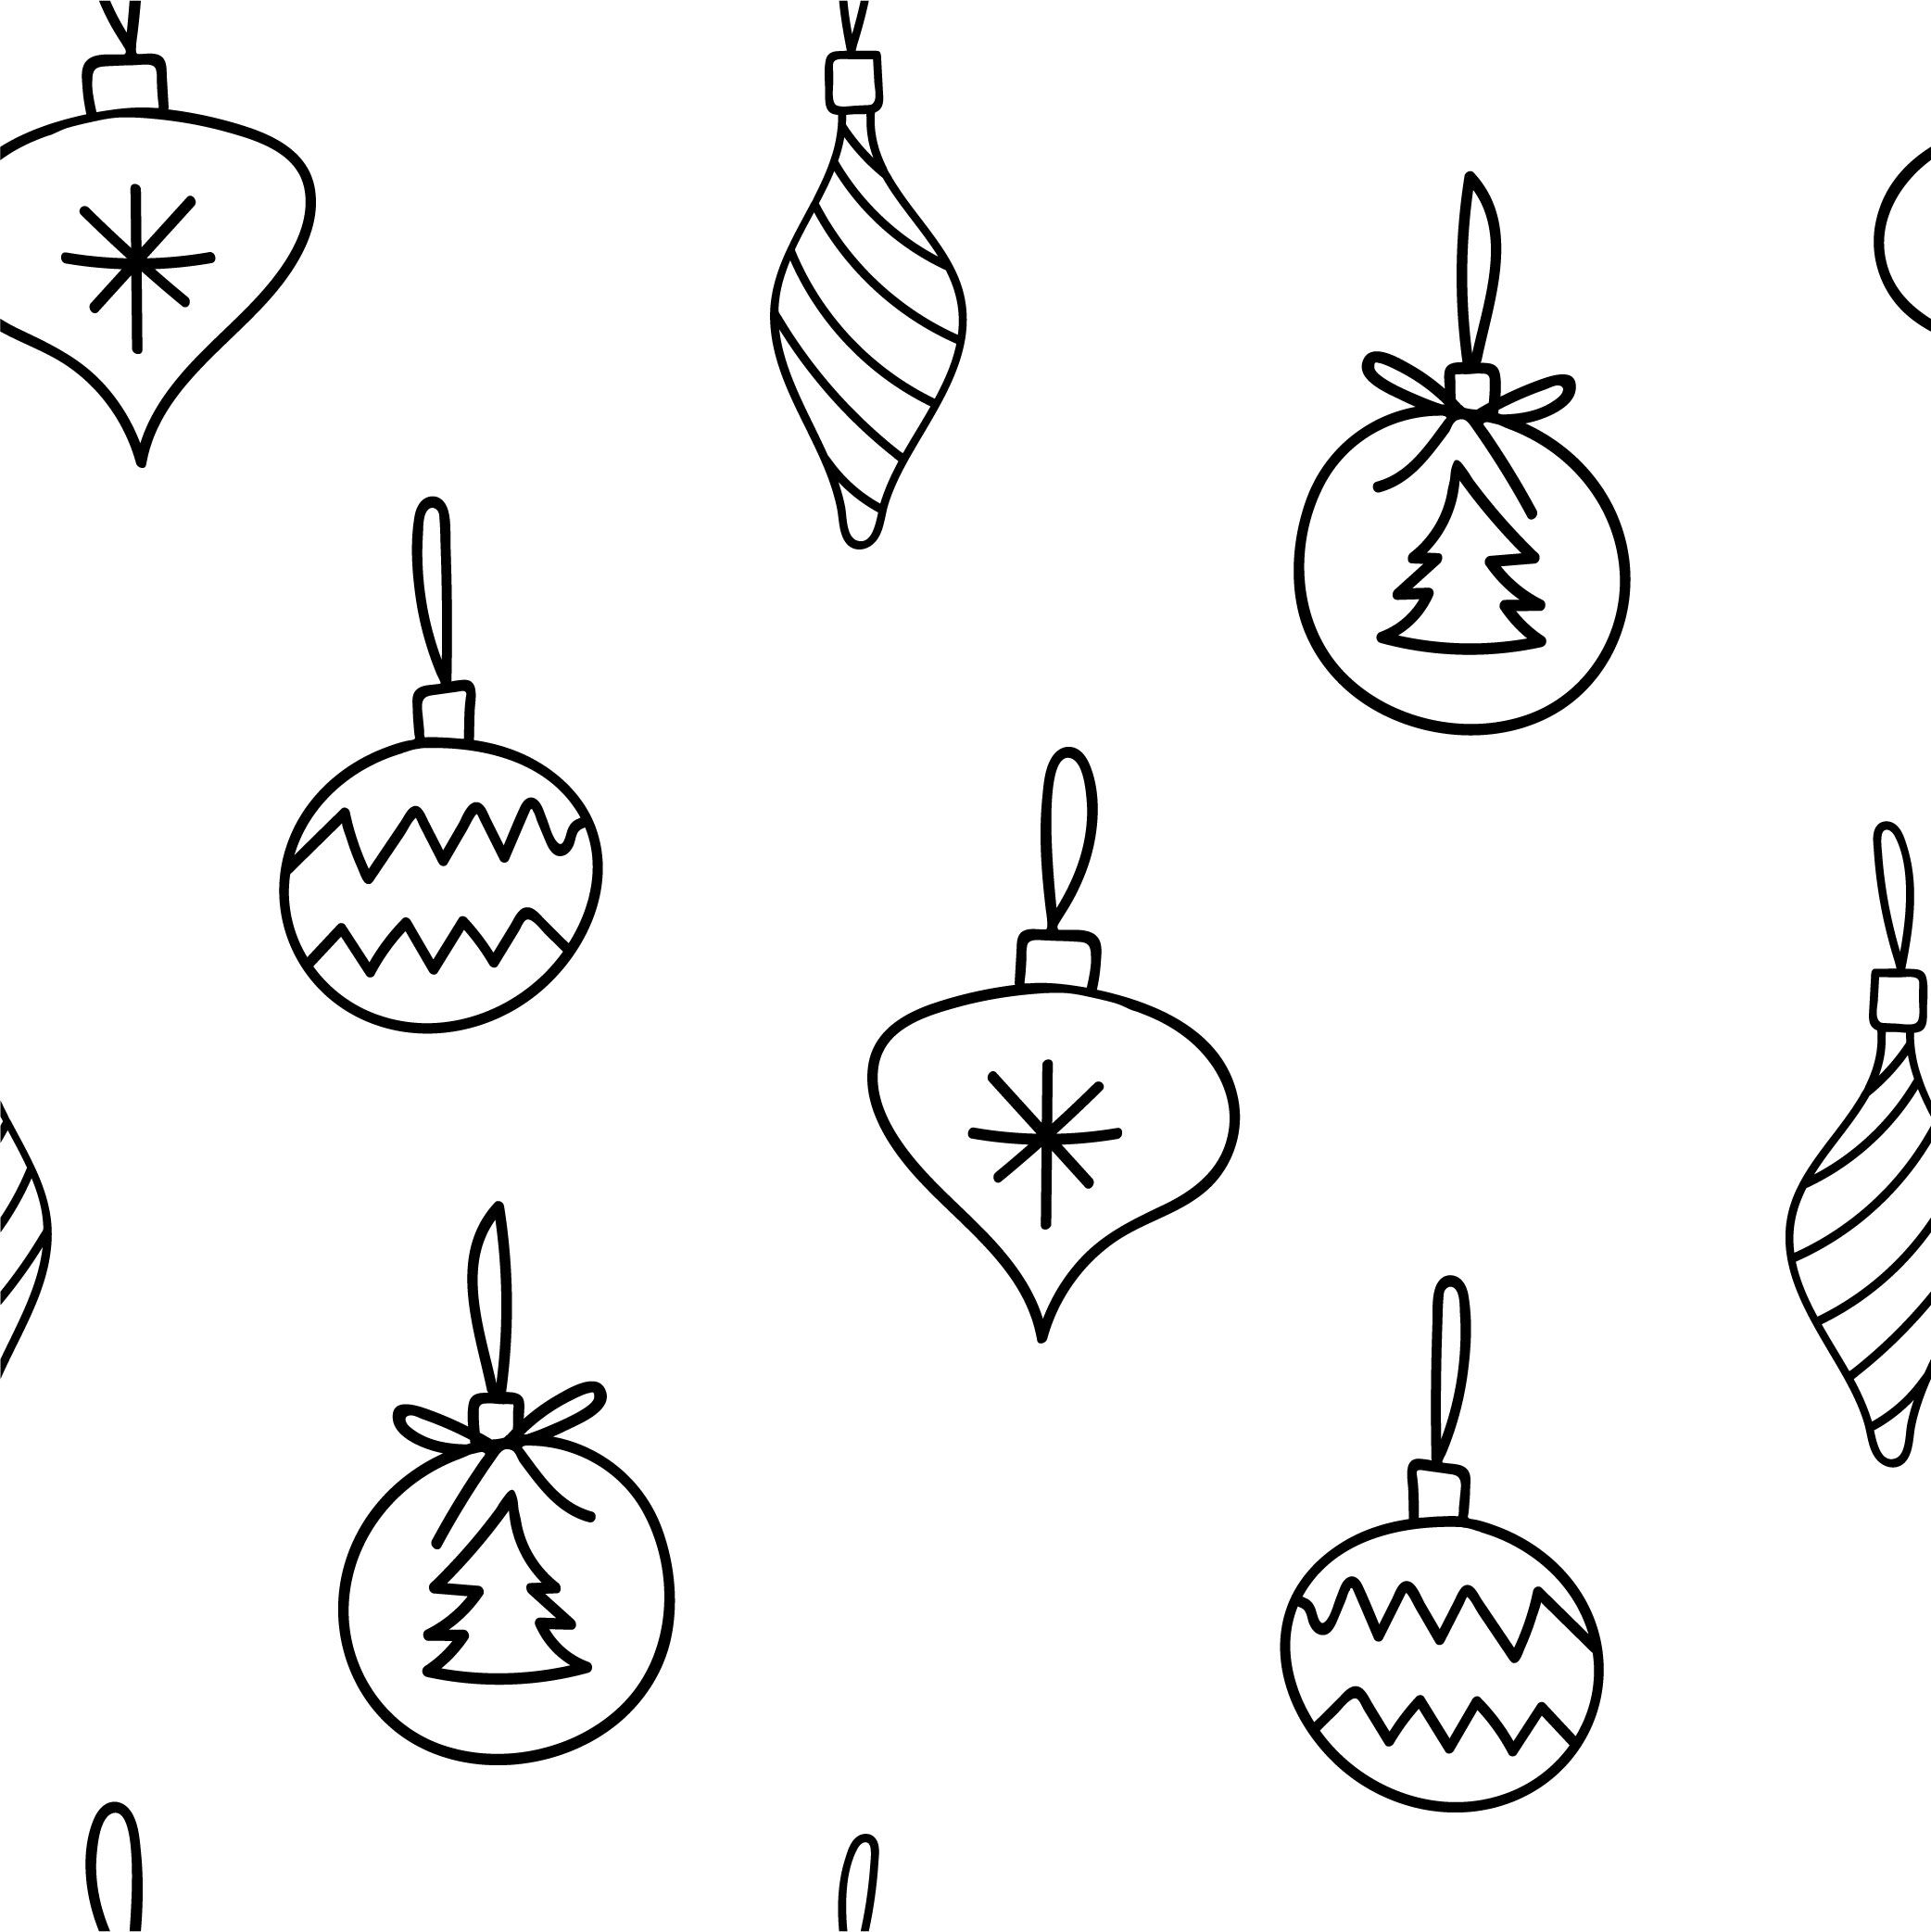 Christmas Tree Baubles Seamless Repeating Patterns By Ayselzdesign